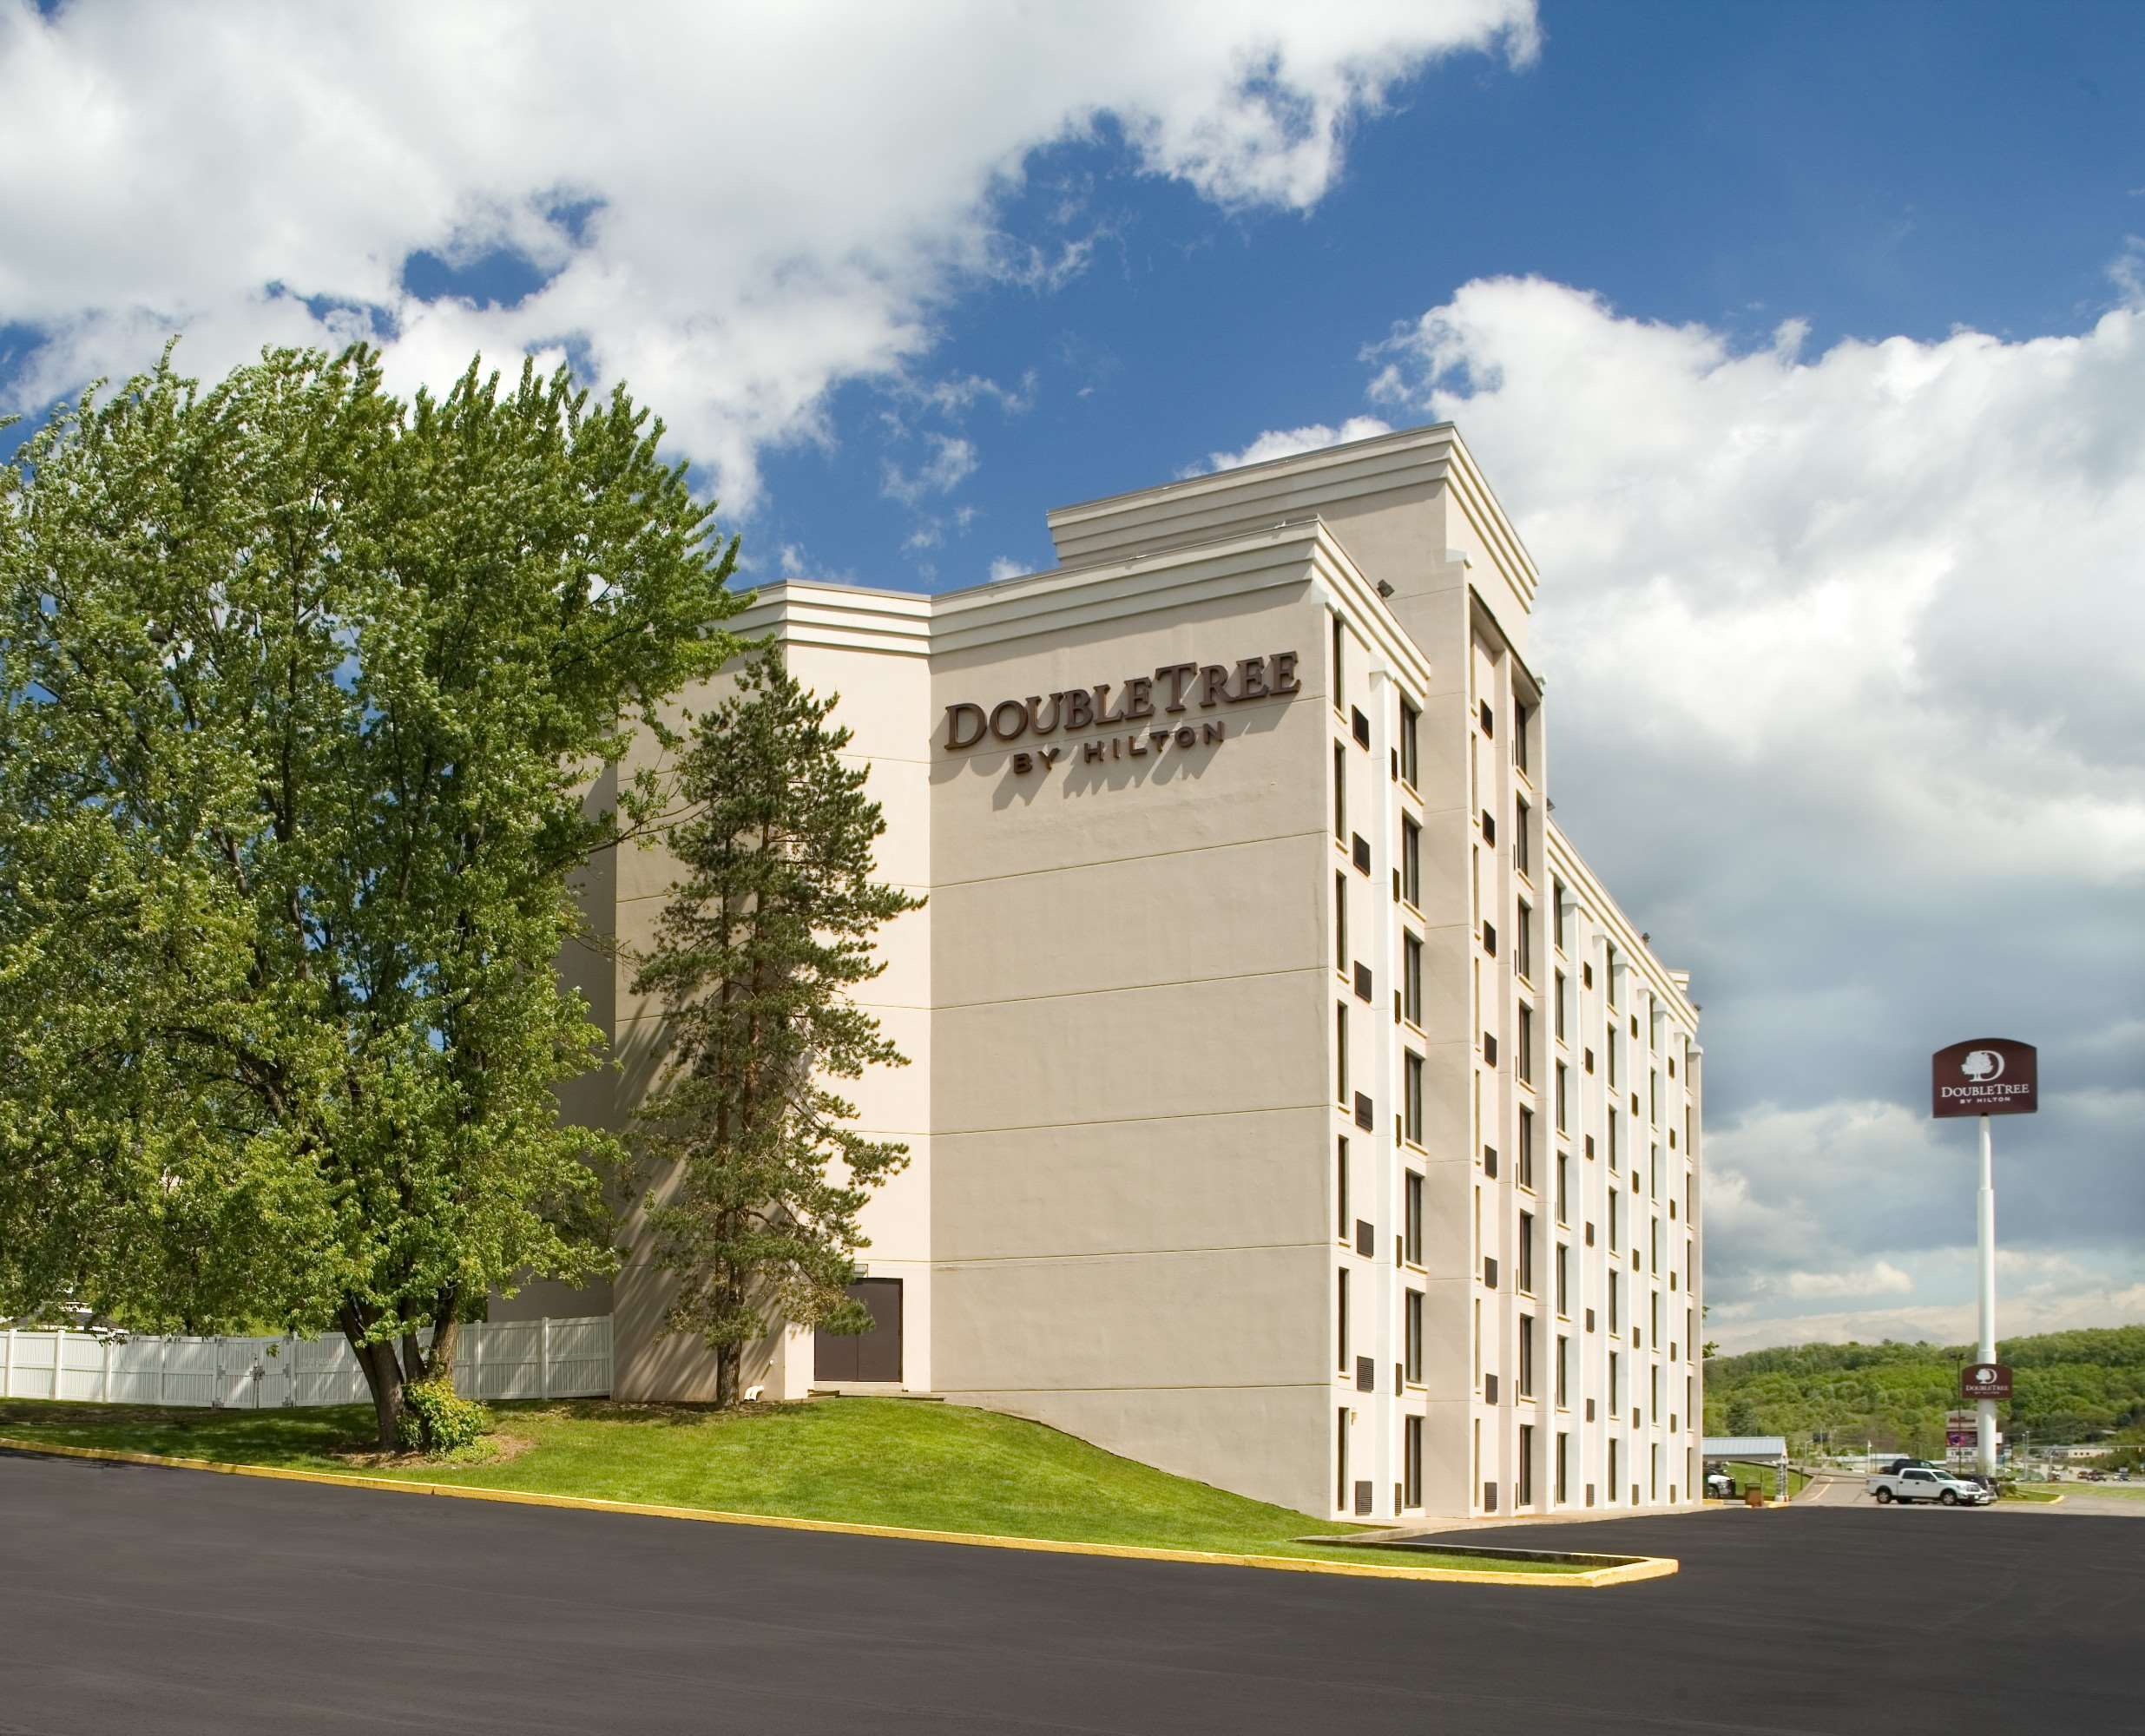 DoubleTree by Hilton Hotel Pittsburgh - Meadow Lands image 1